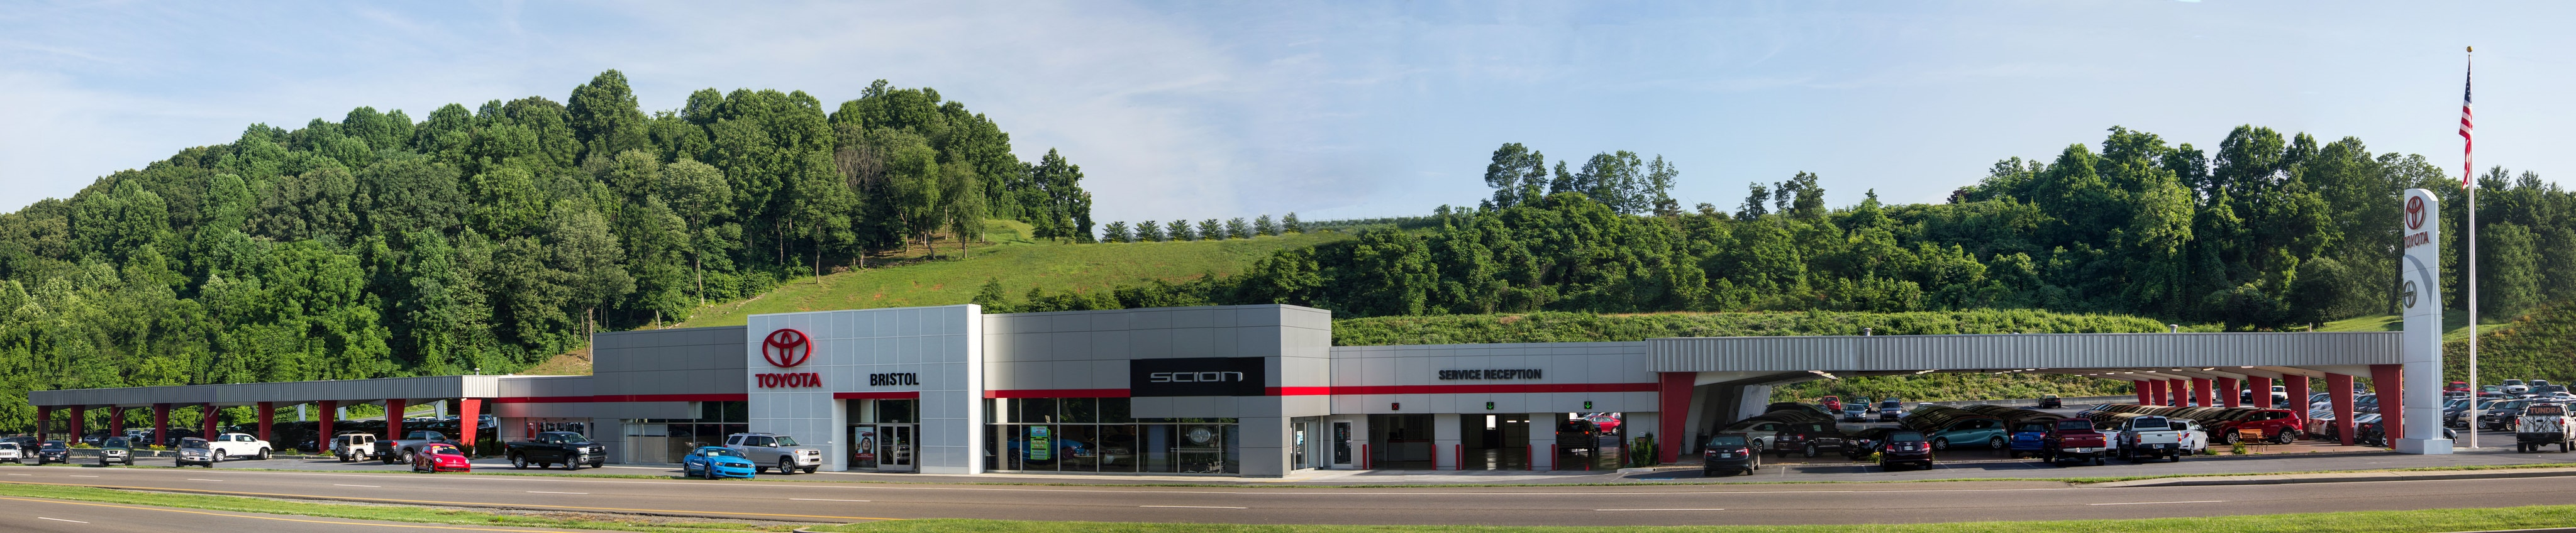 Lovely Toyota Of Bristol, New U0026 Used Toyota Dealership In Bristol, TN, Serving  Johnson City U0026 Kingsport